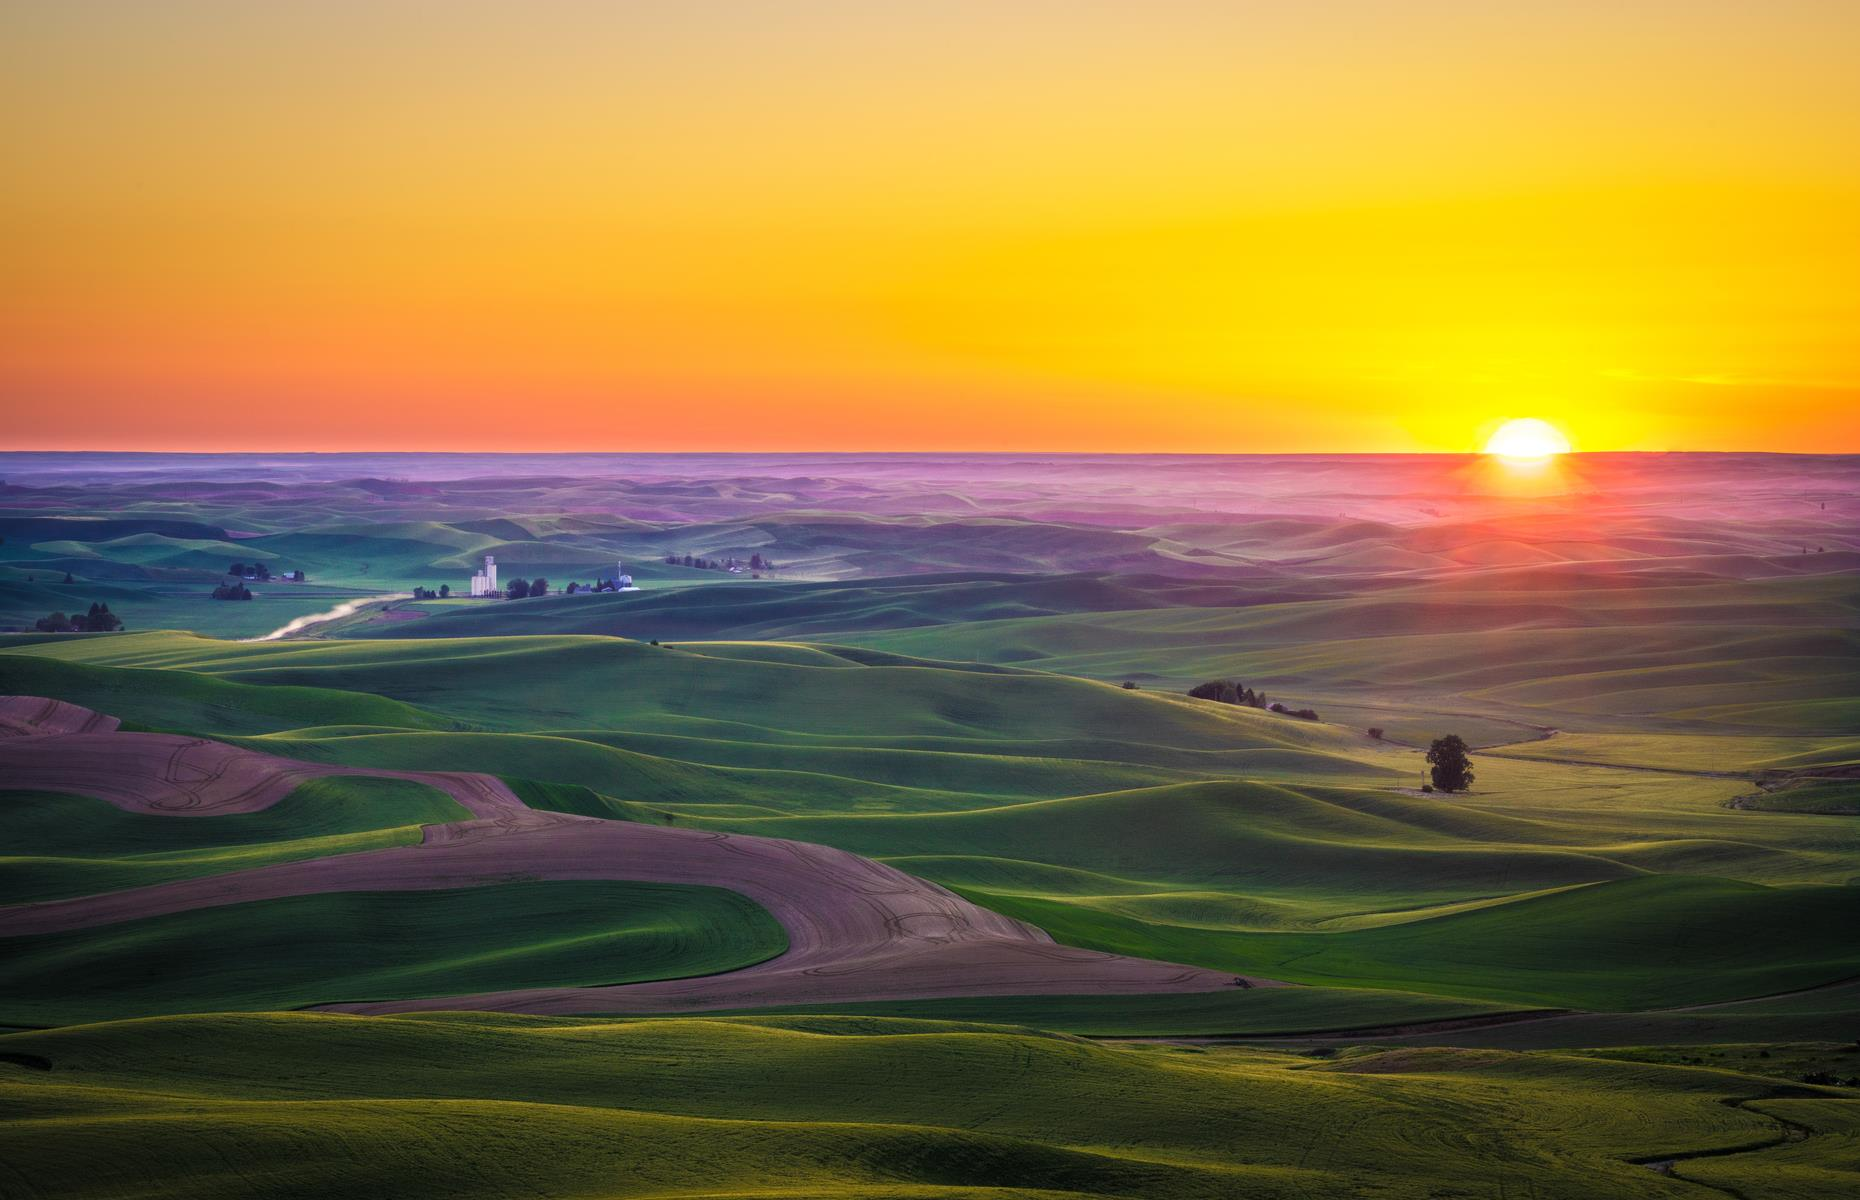 Slide 12 of 61: One of the premier agricultural regions in this part of the US, the Palouse area is all rolling hills and color-splashed meadows. It could easily be compared to Italy's Tuscany region too: it bears the same wave-like landscapes, blonde wheat fields and epic sunsets. Driving the Palouse Scenic Byway is a great way to discover the Washington portion of the region.